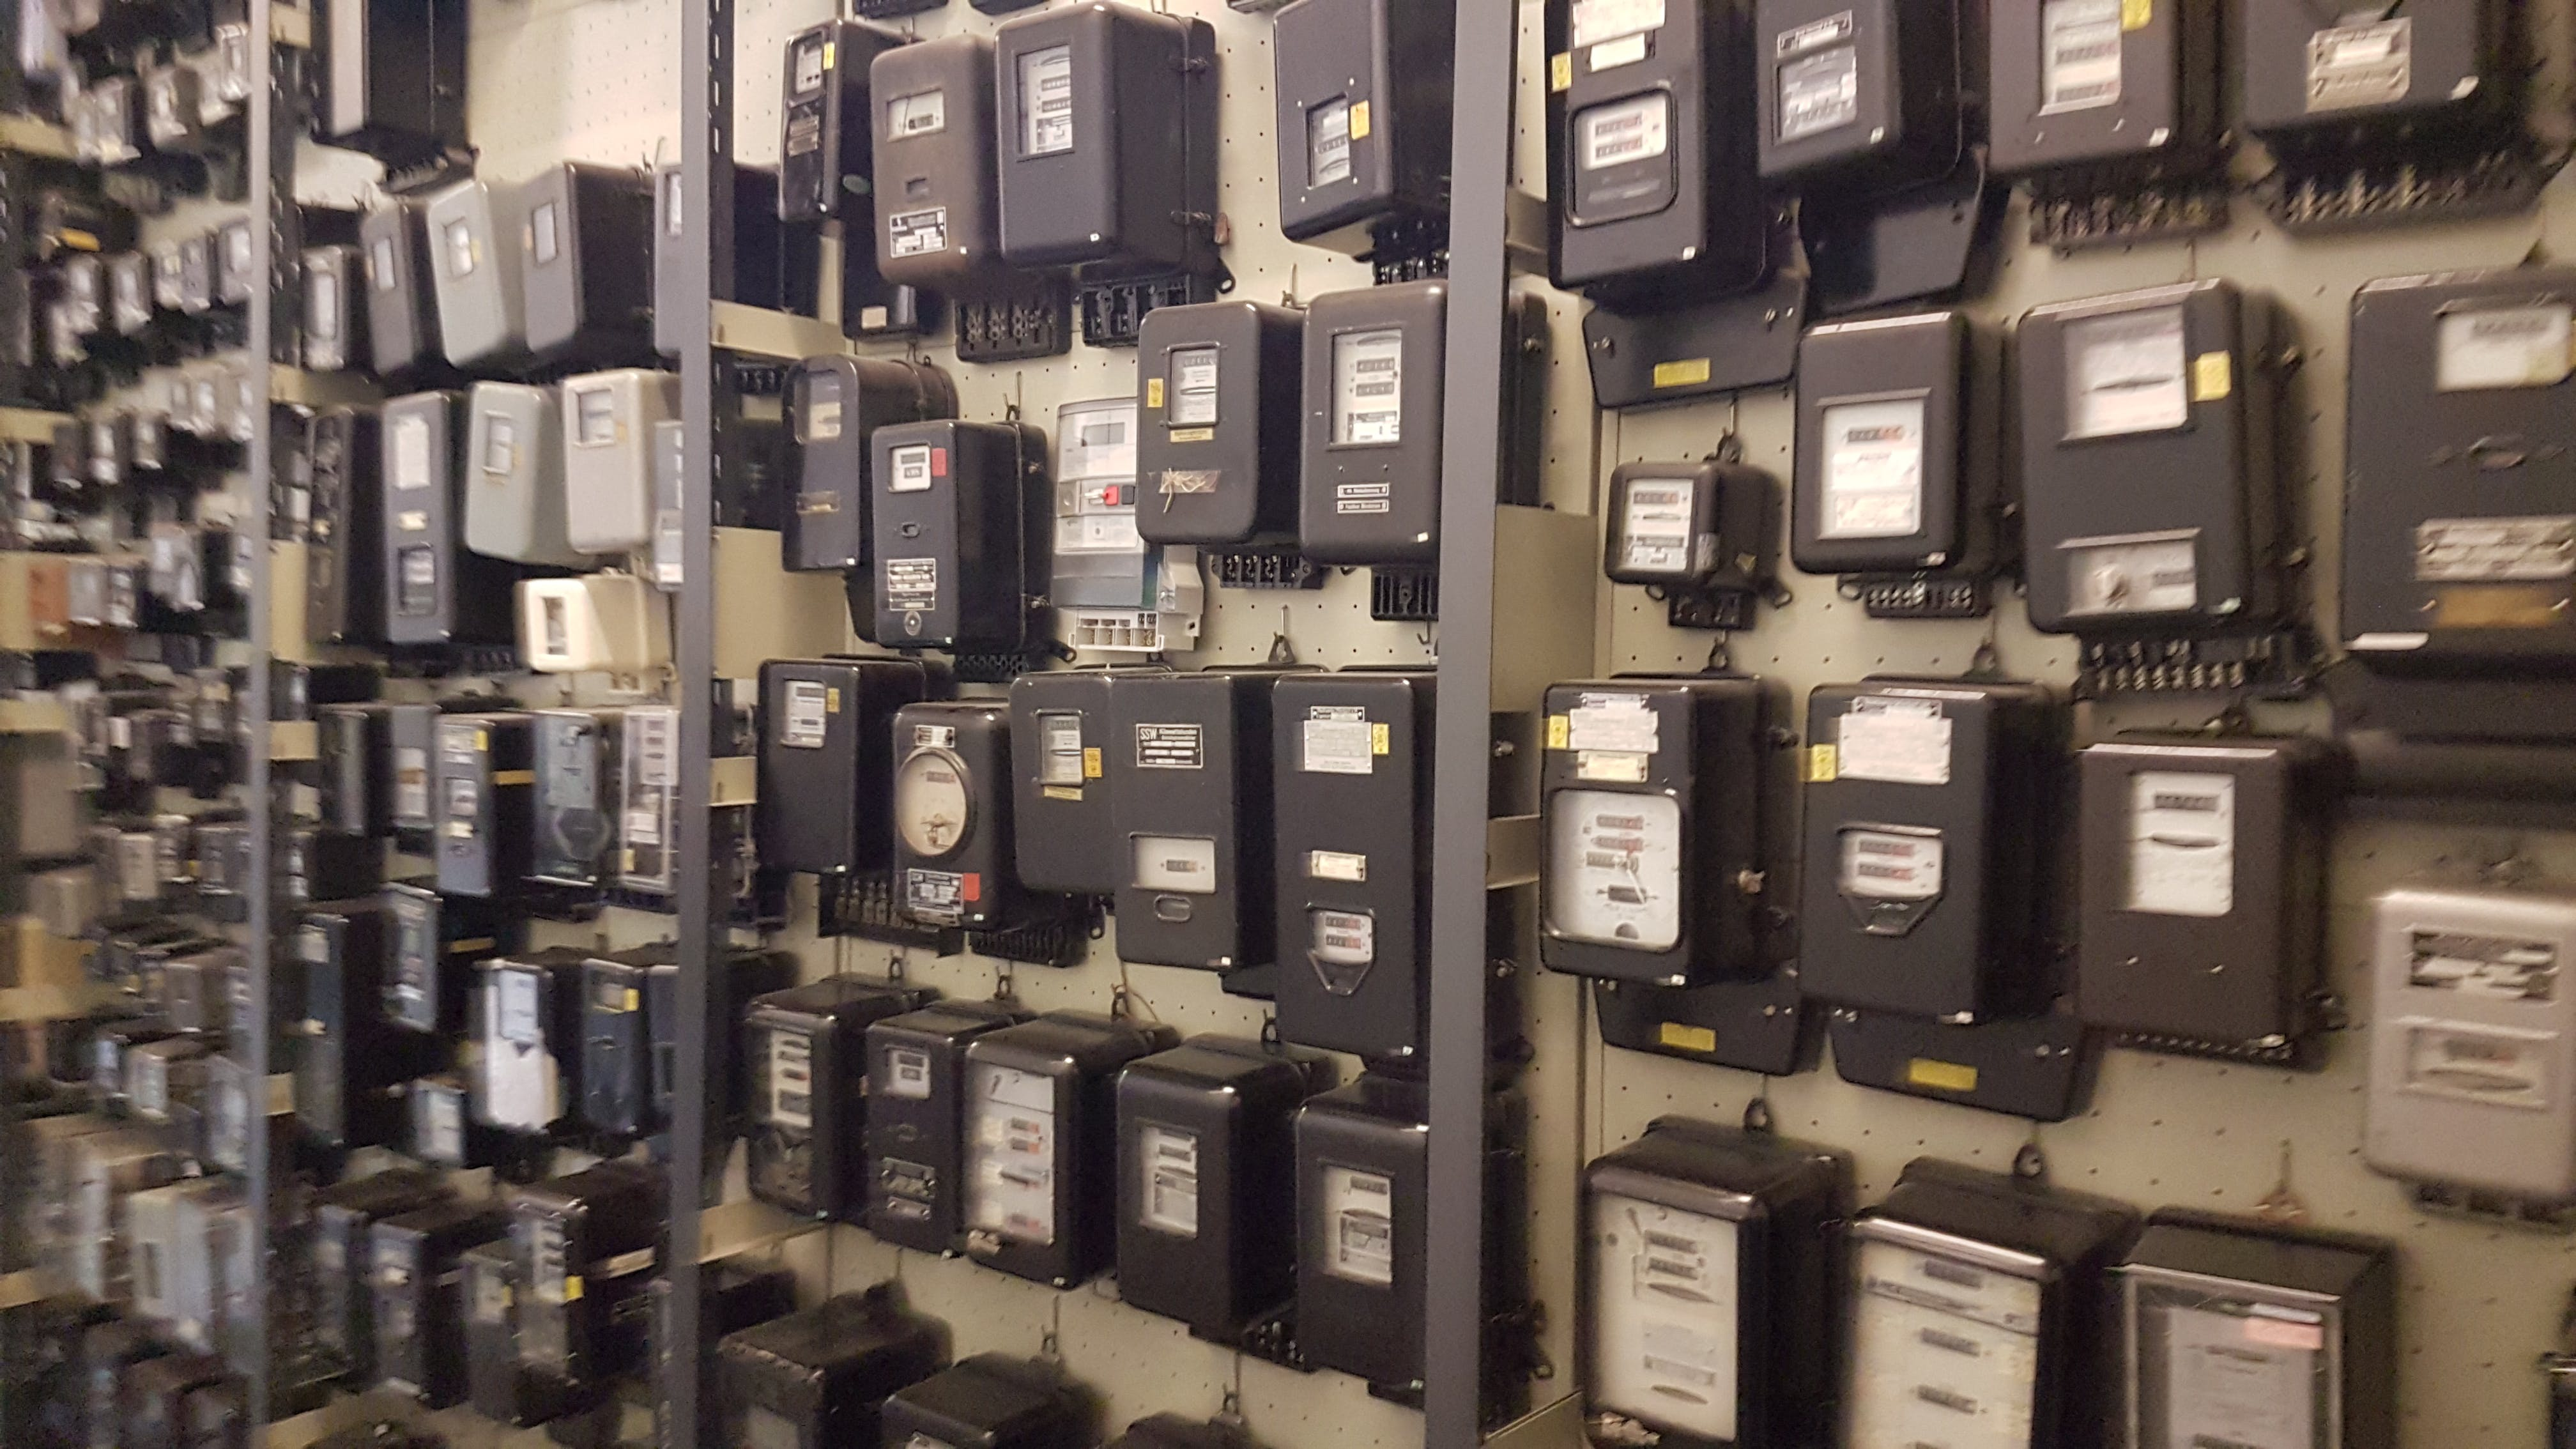 Free stock photo of Electricity meters, Energy meters, KwH meters